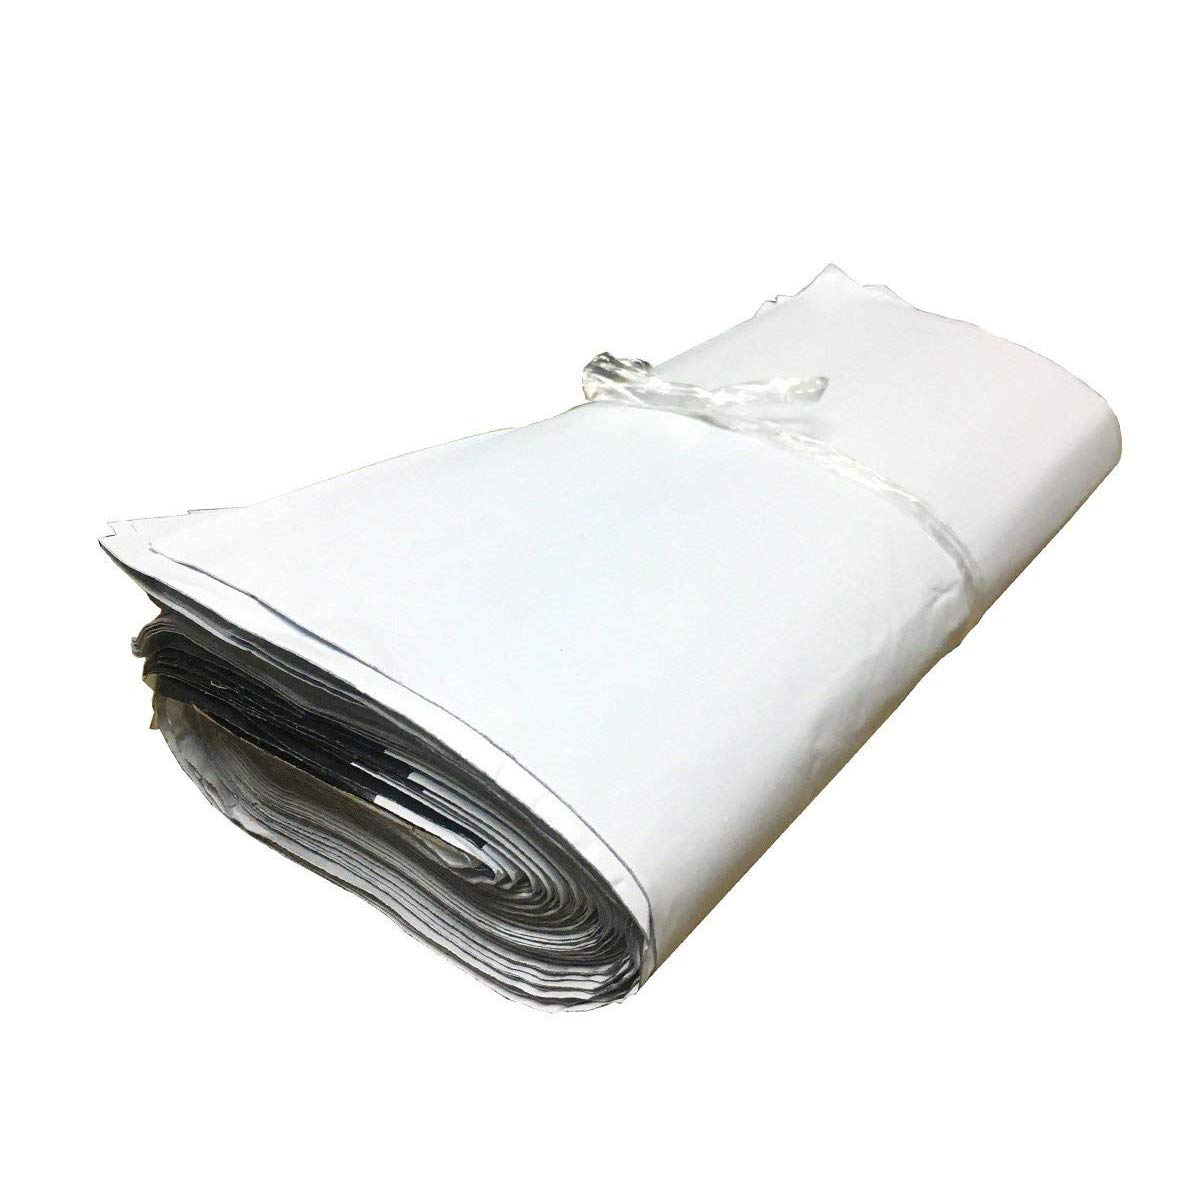 Poly Mailer 100 Mailing Bags Plastic Mail Envelope for Shipping 2.5 Mil Lightweight Postal Bags (White, 10 x 14 inch) Novelty Bank